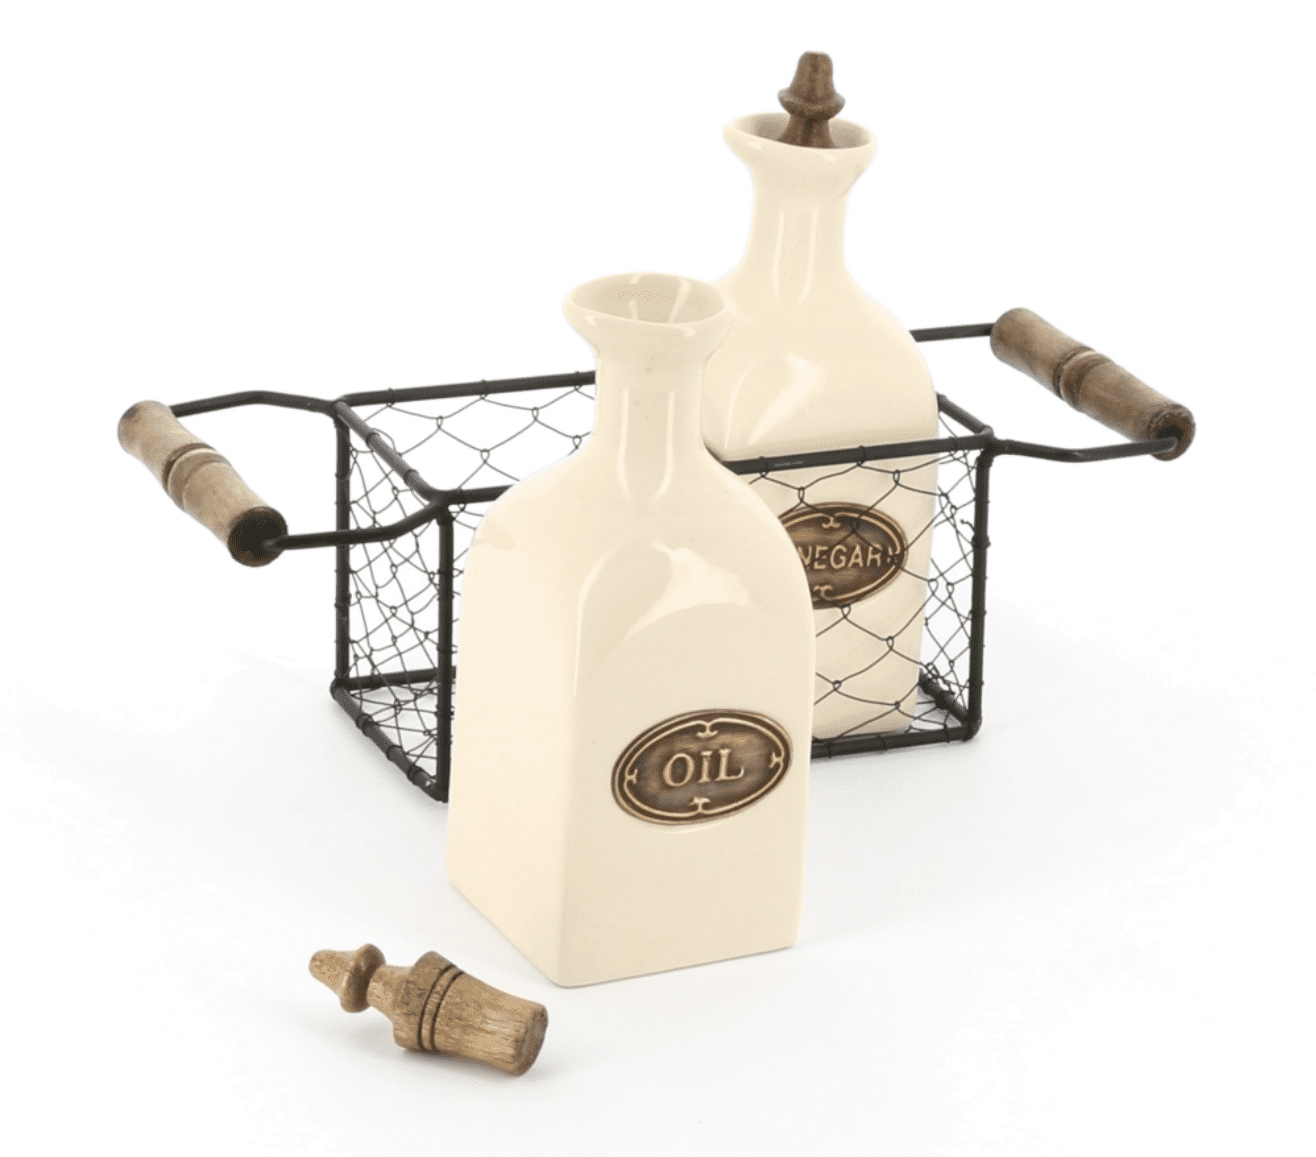 Country kitchen oil and vinegar ceramic set in a wire 2 handled carrier with wooden knobs